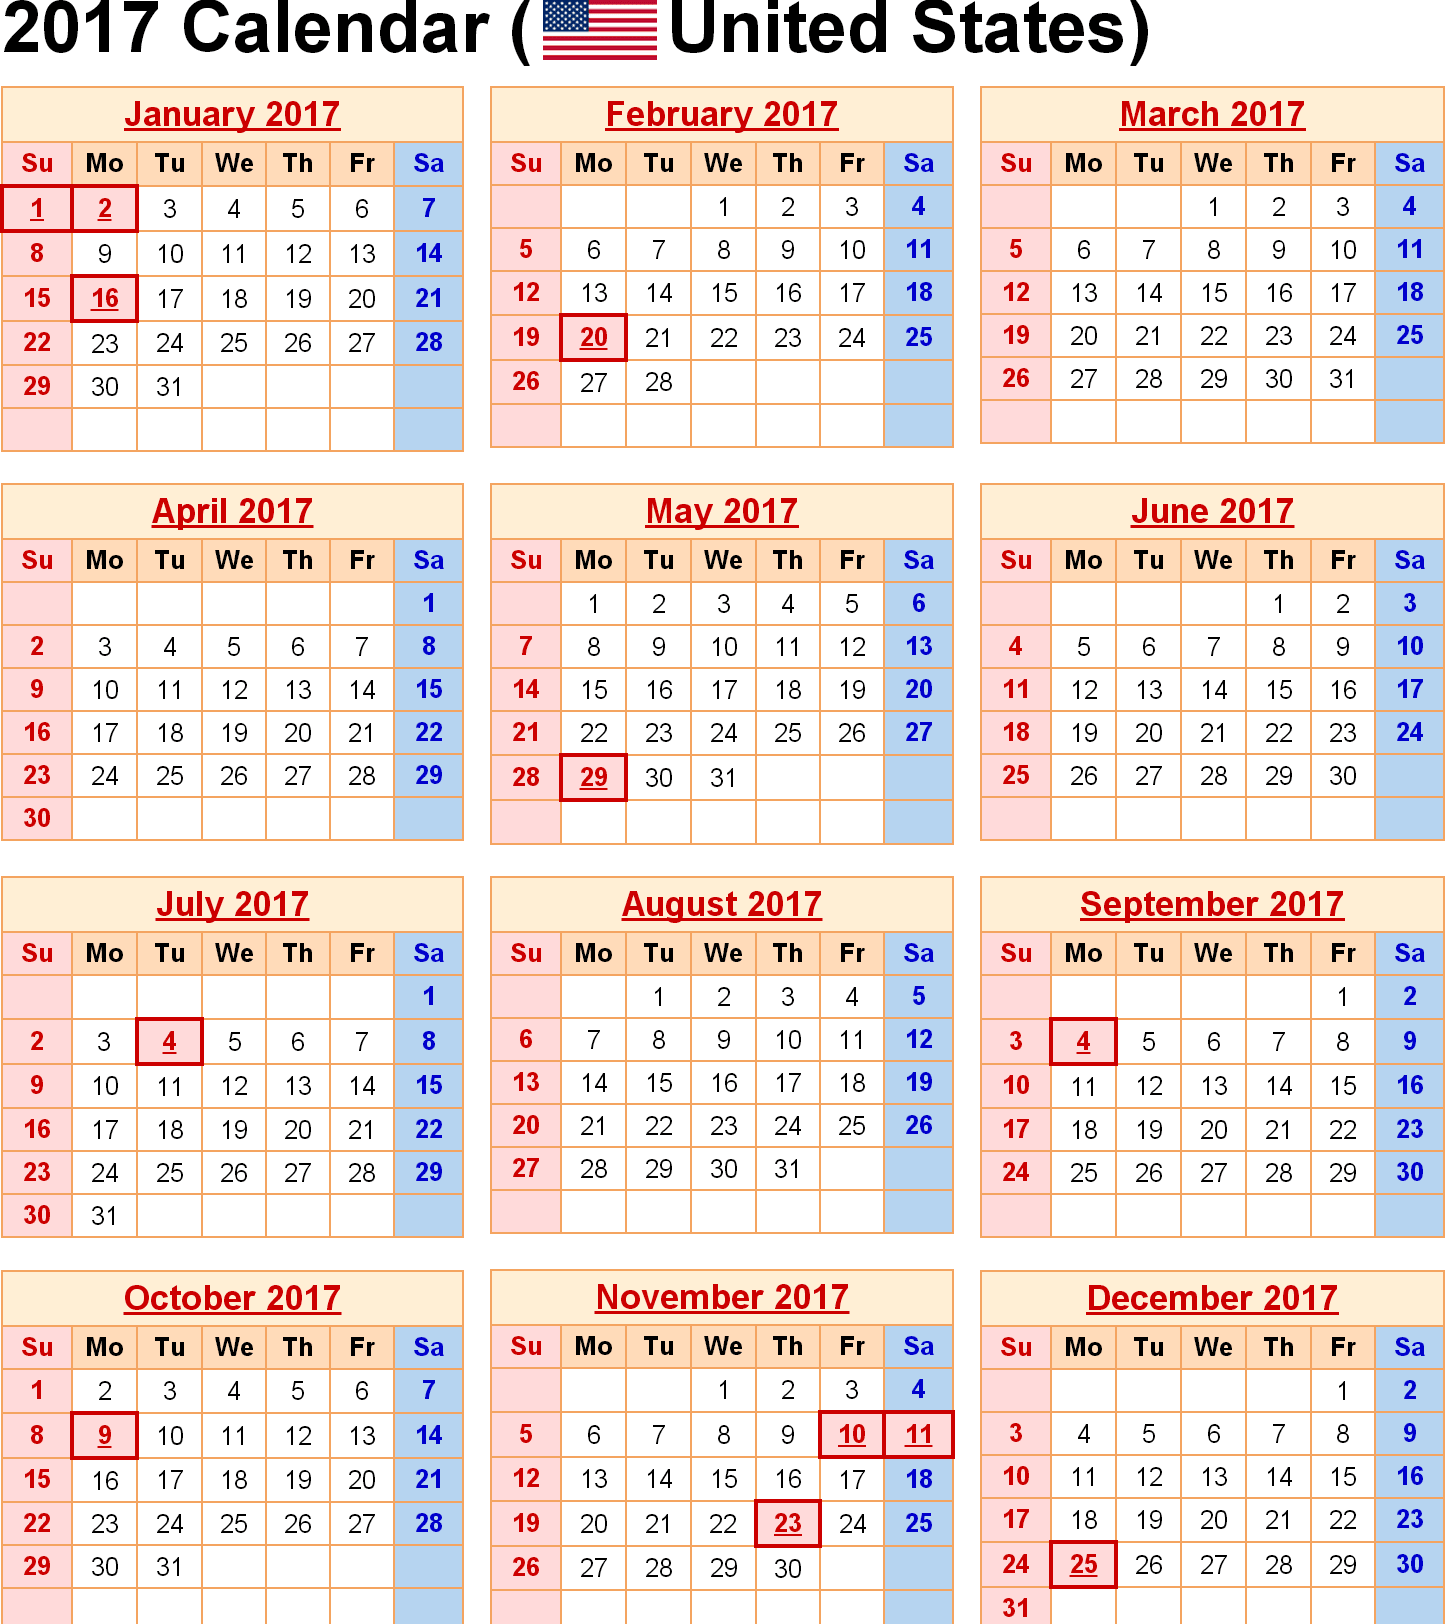 Holiday Calendar Us 2017 Calendar For Year 2017 United States Time And Date Usa National Holidays